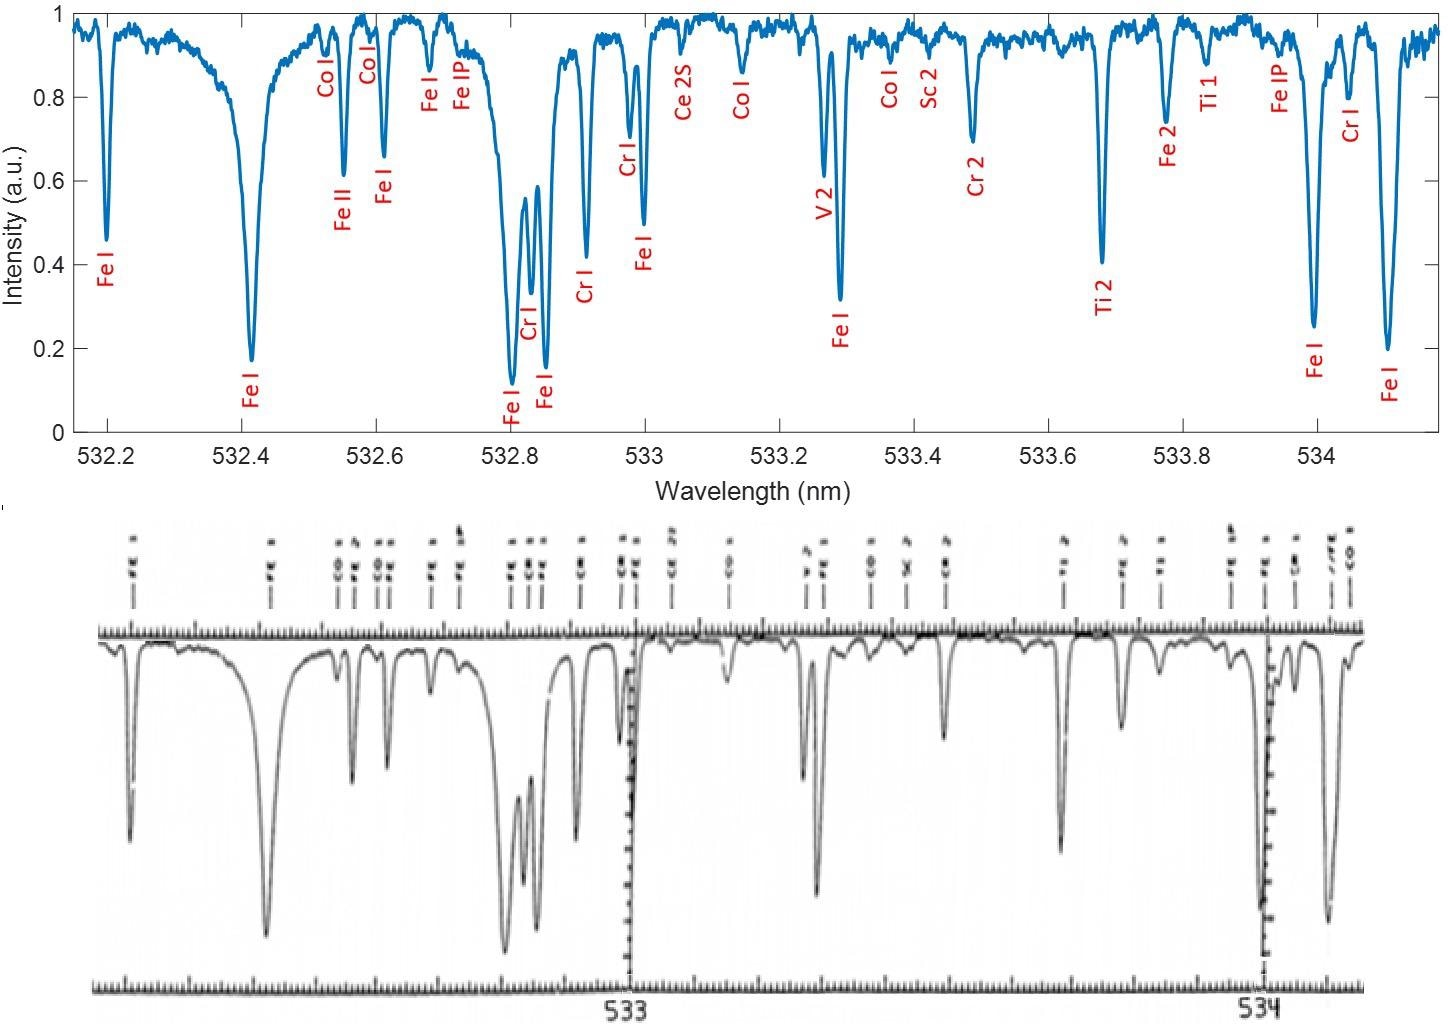 The upper trace shows the output from the HyperFine software once it has analyzed images such as those shown in Figure 8. The labels in red are the ionic species responsible for the individual absorption lines in the solar background, and the labels were added once the HyperFine spectrum was compared with a spectrum from the literature14.